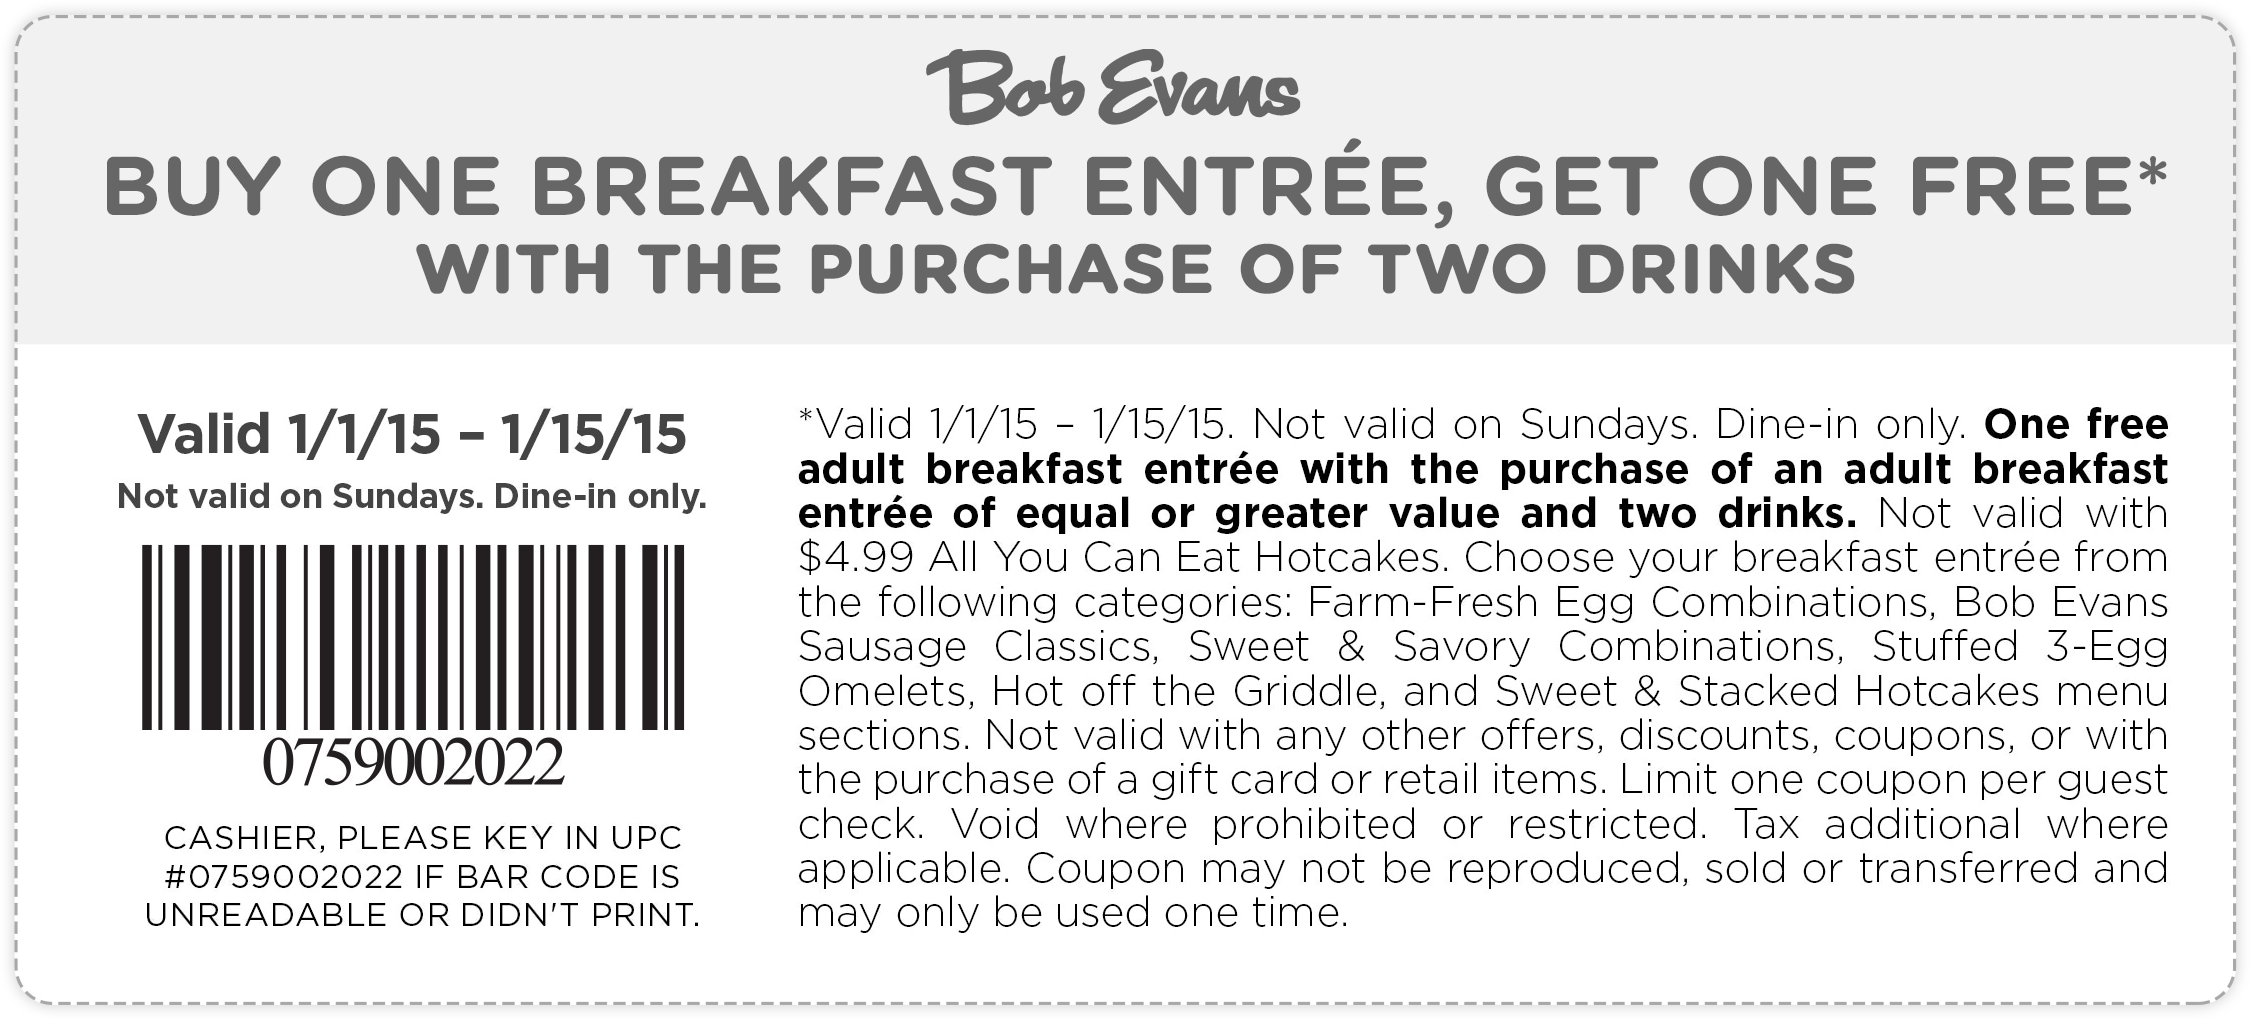 Bob Evans Coupon October 2016 Second breakfast free at Bob Evans